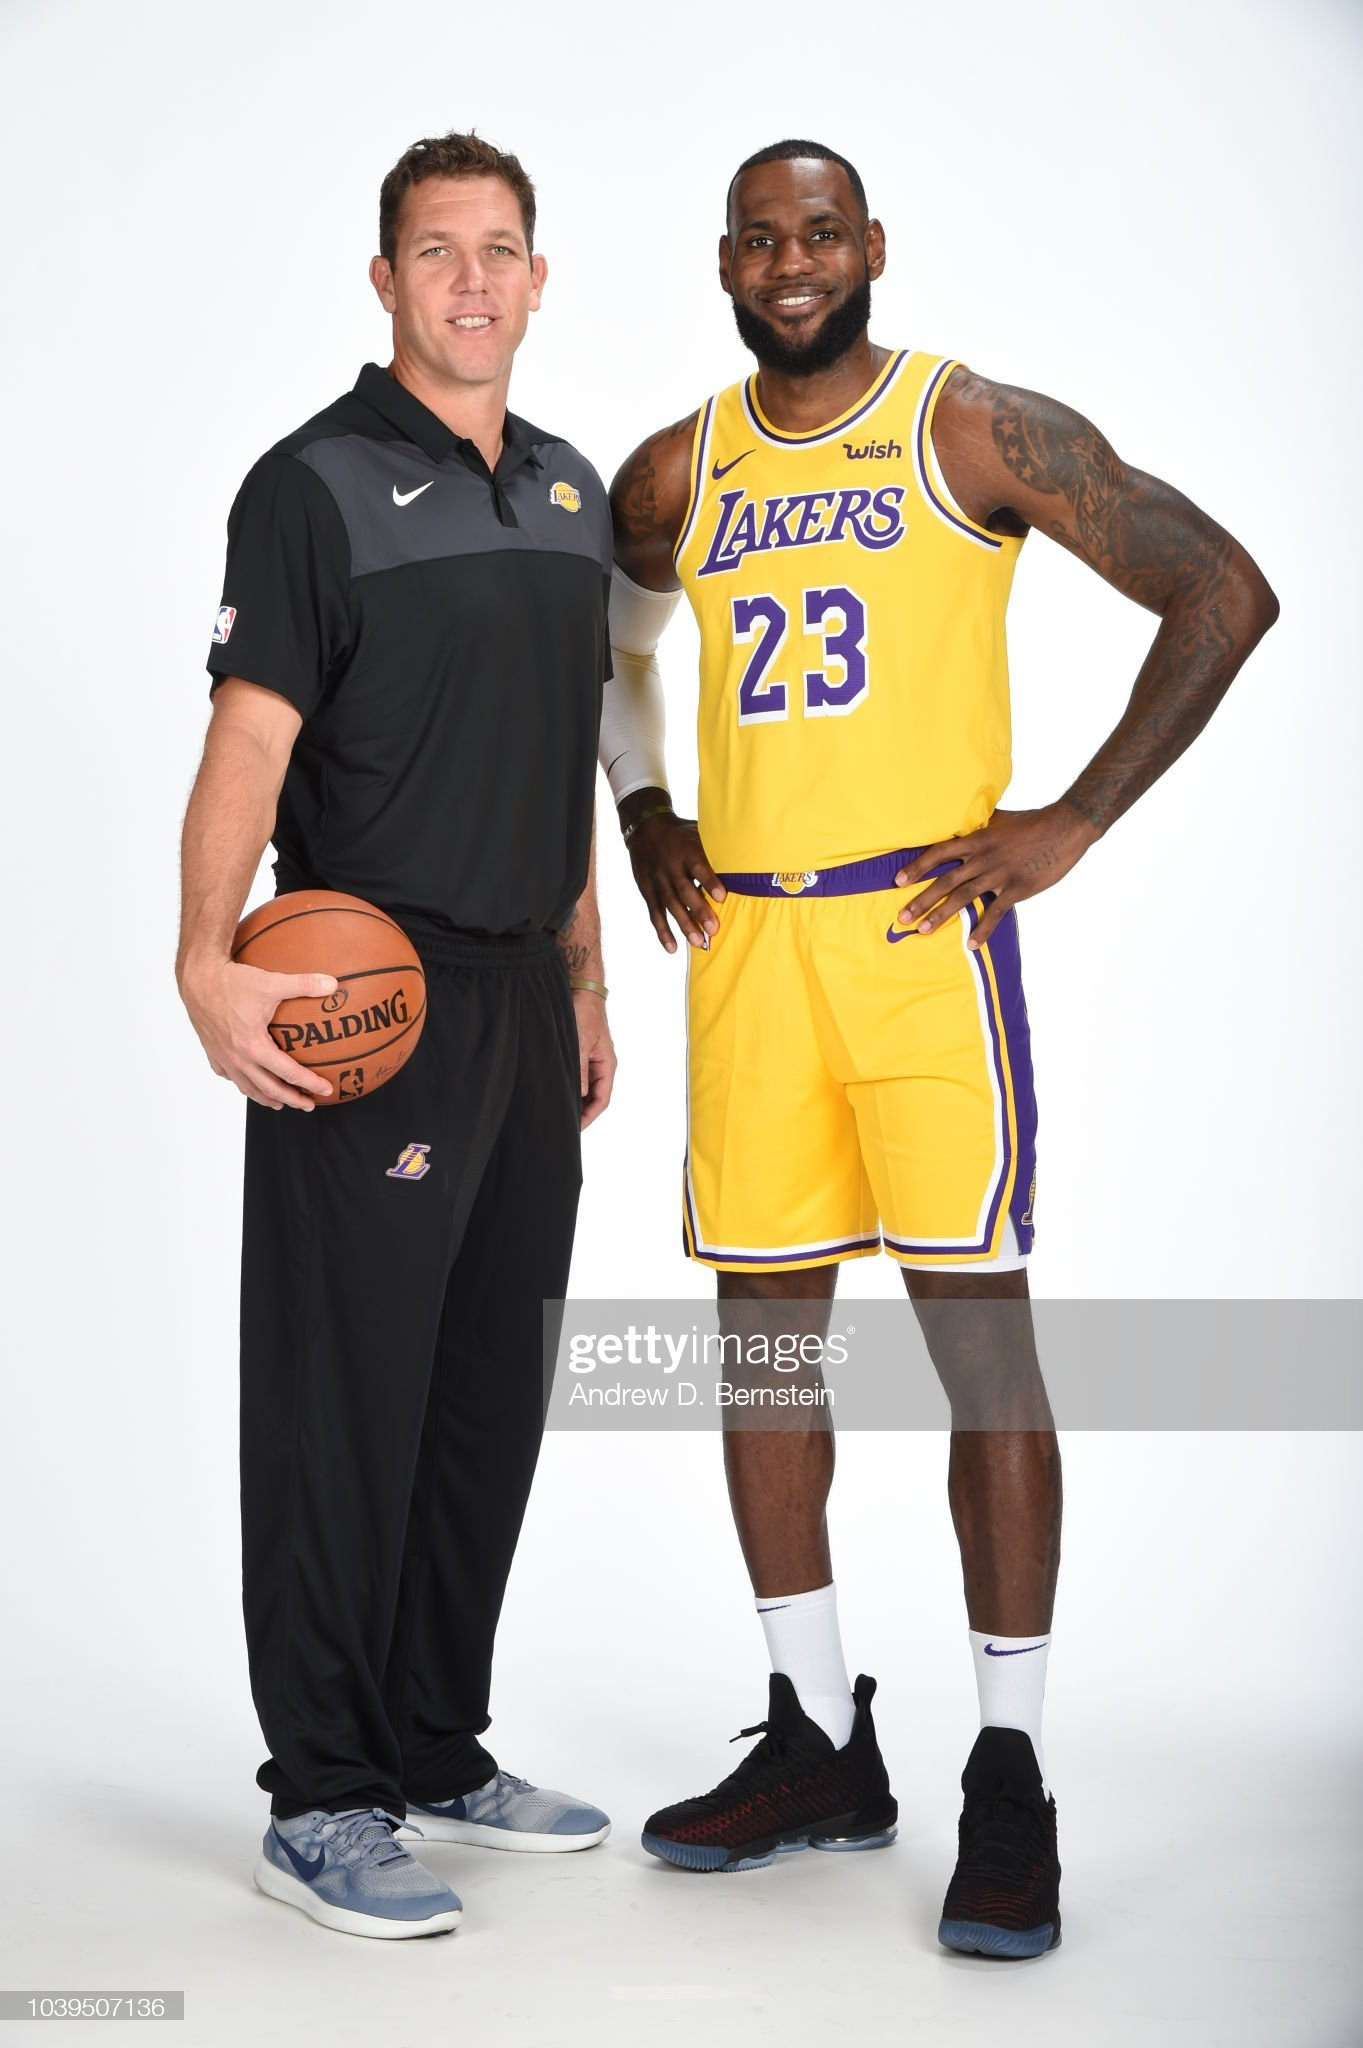 ¿Cuánto mide LeBron James? - Altura - Real height Head-coach-luke-walton-and-lebron-james-of-the-los-angeles-lakers-a-picture-id1039507136?s=2048x2048